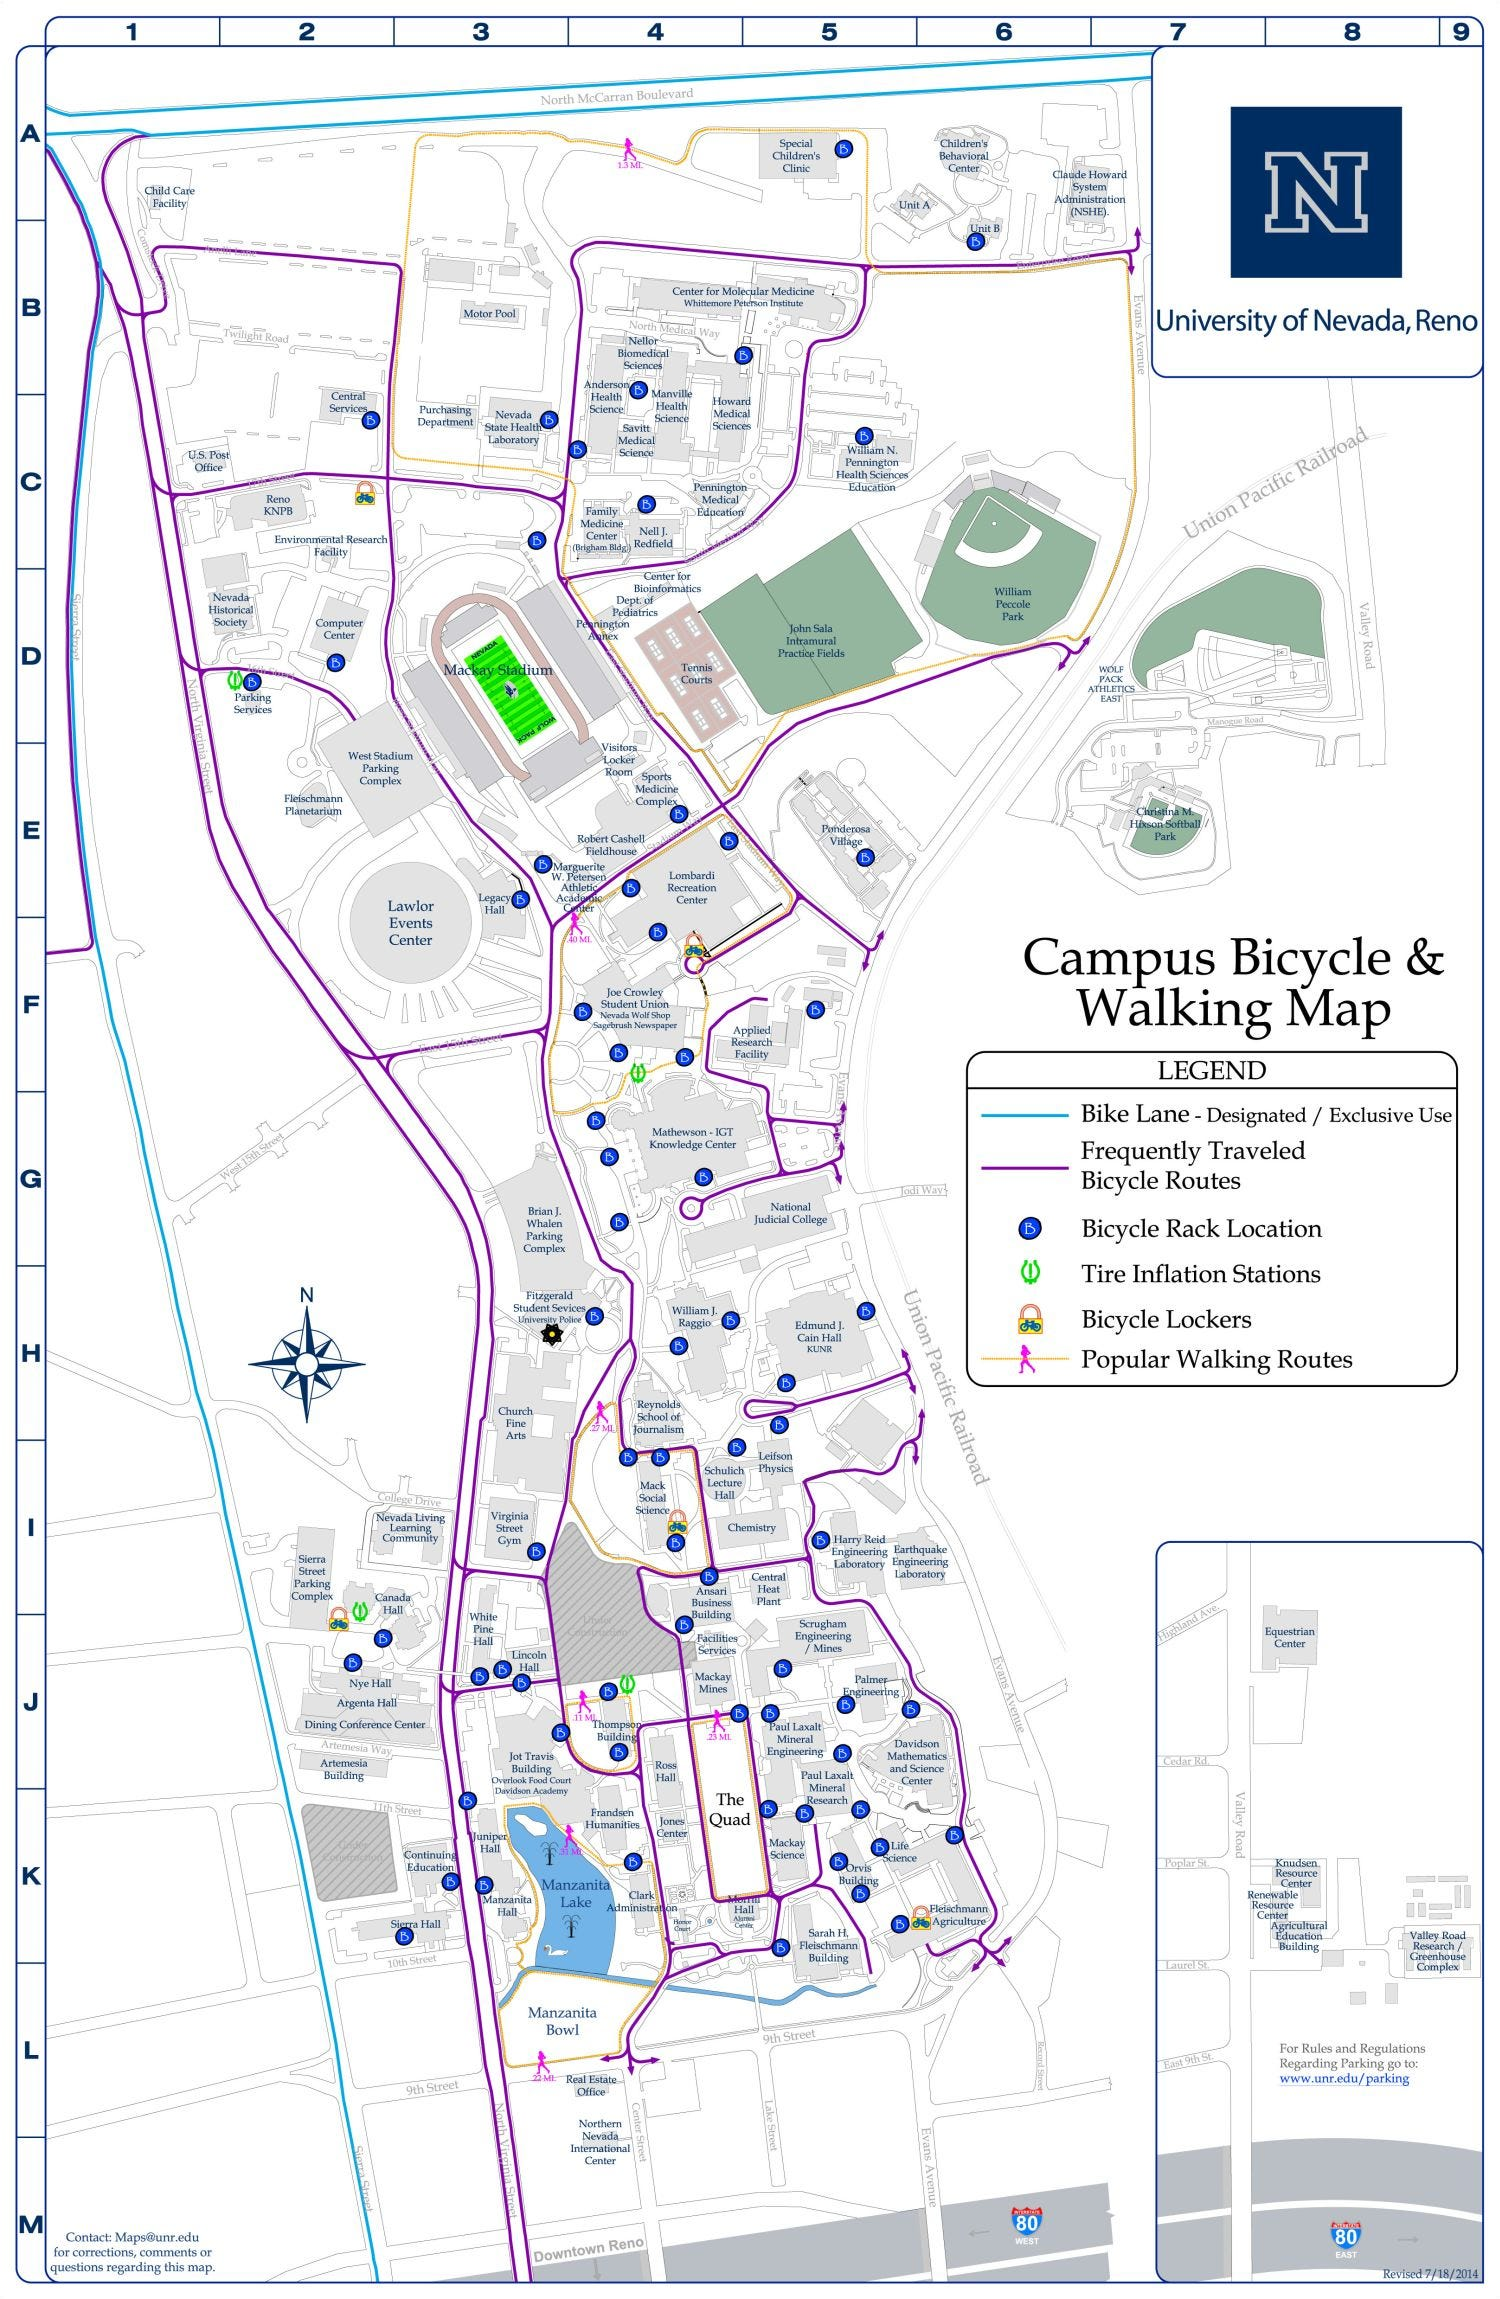 Group cites UNR with bronze distinction for being bike friendly